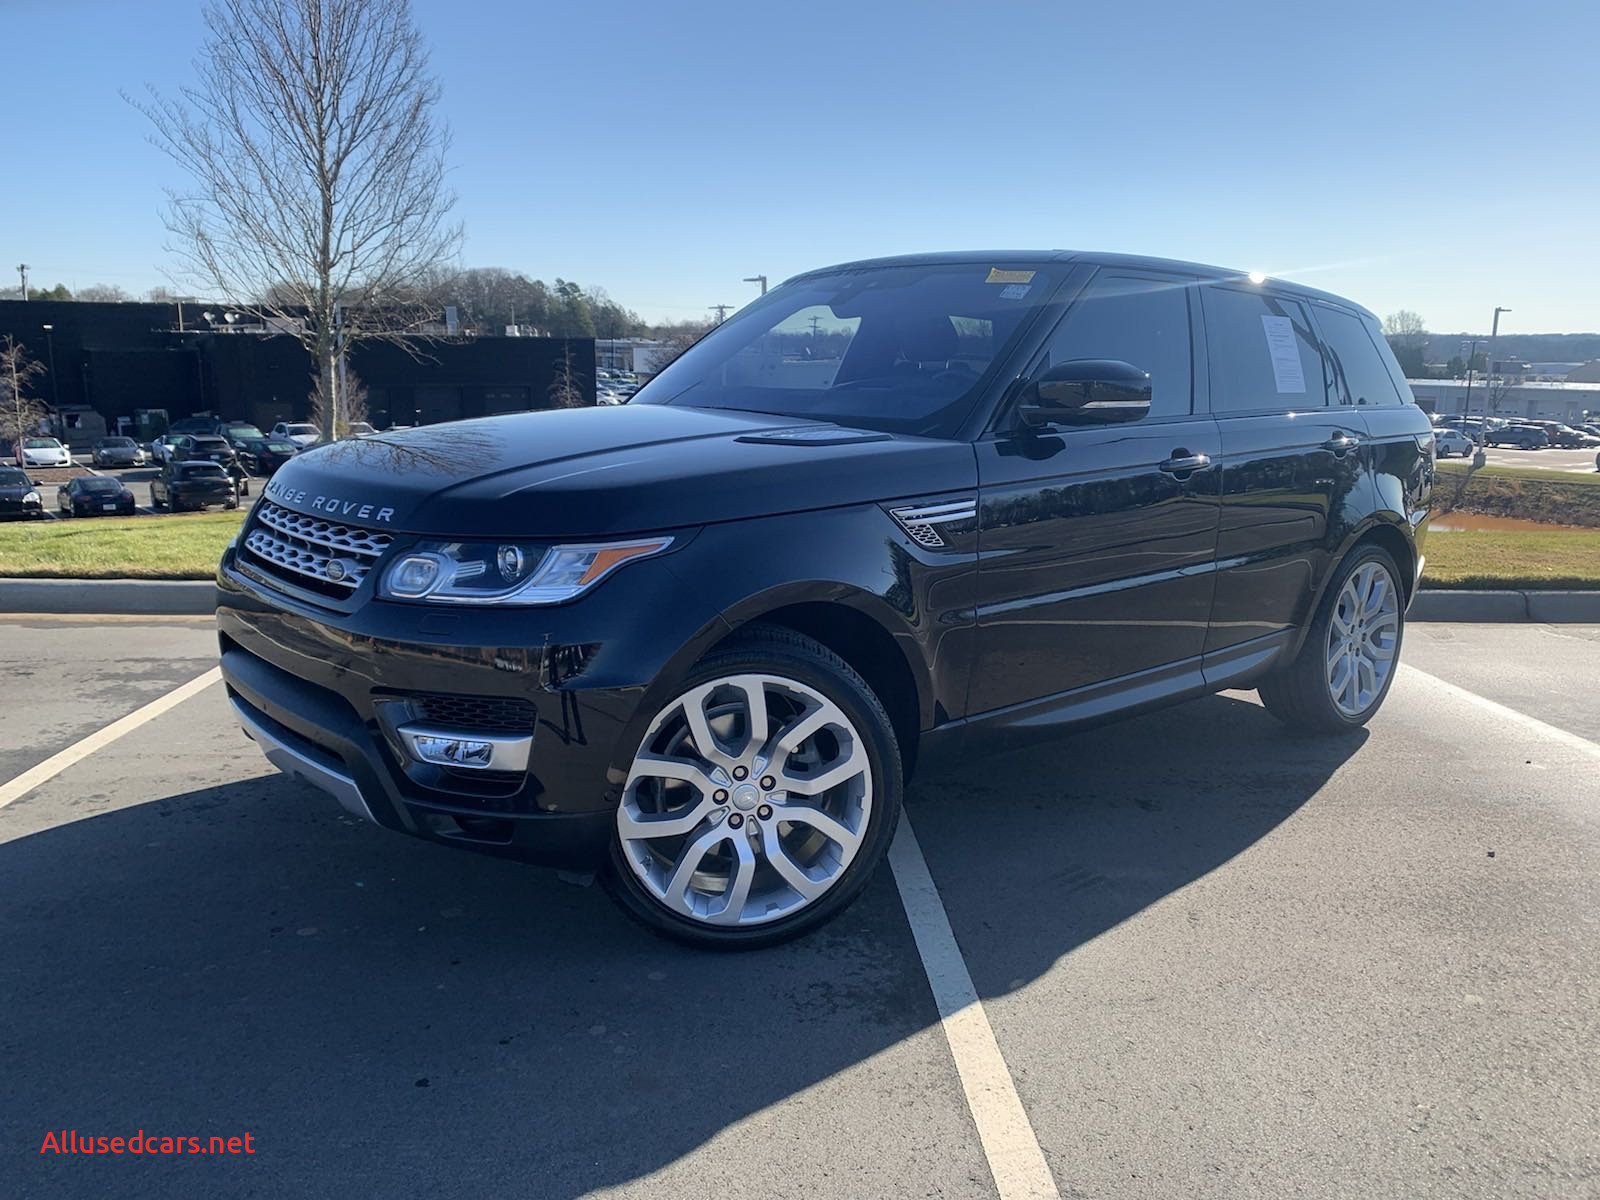 Used Range Rover Sport Best Of Certified Pre Owned 2017 Land Rover Range Rover Sport Hse with Navigation & 4wd